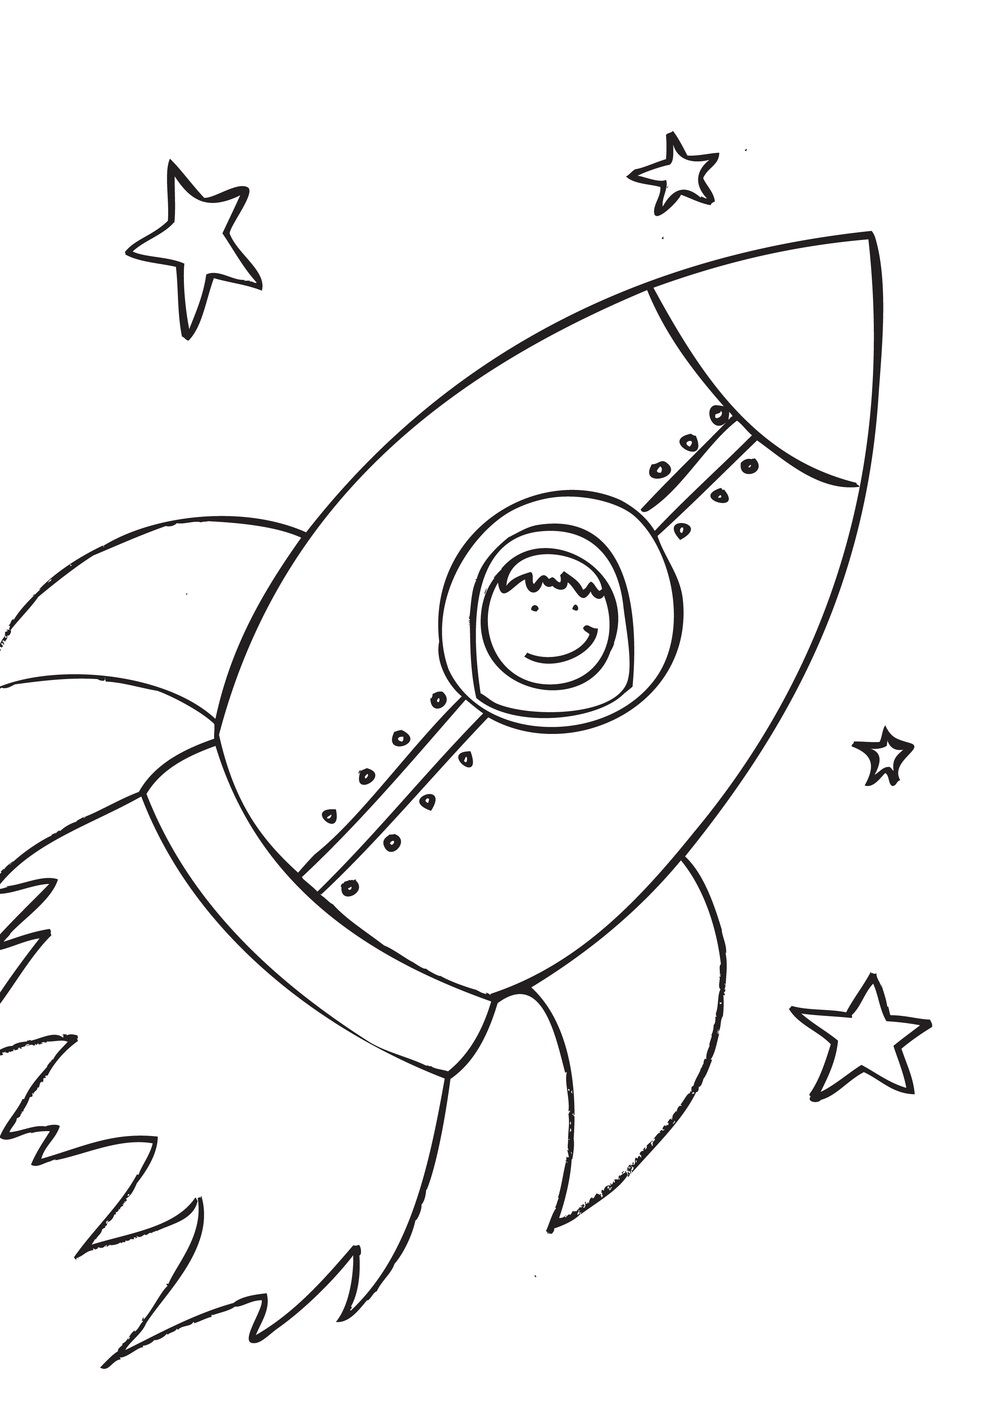 free rocket ship coloring pages with printable rocket ship coloring pages for kids